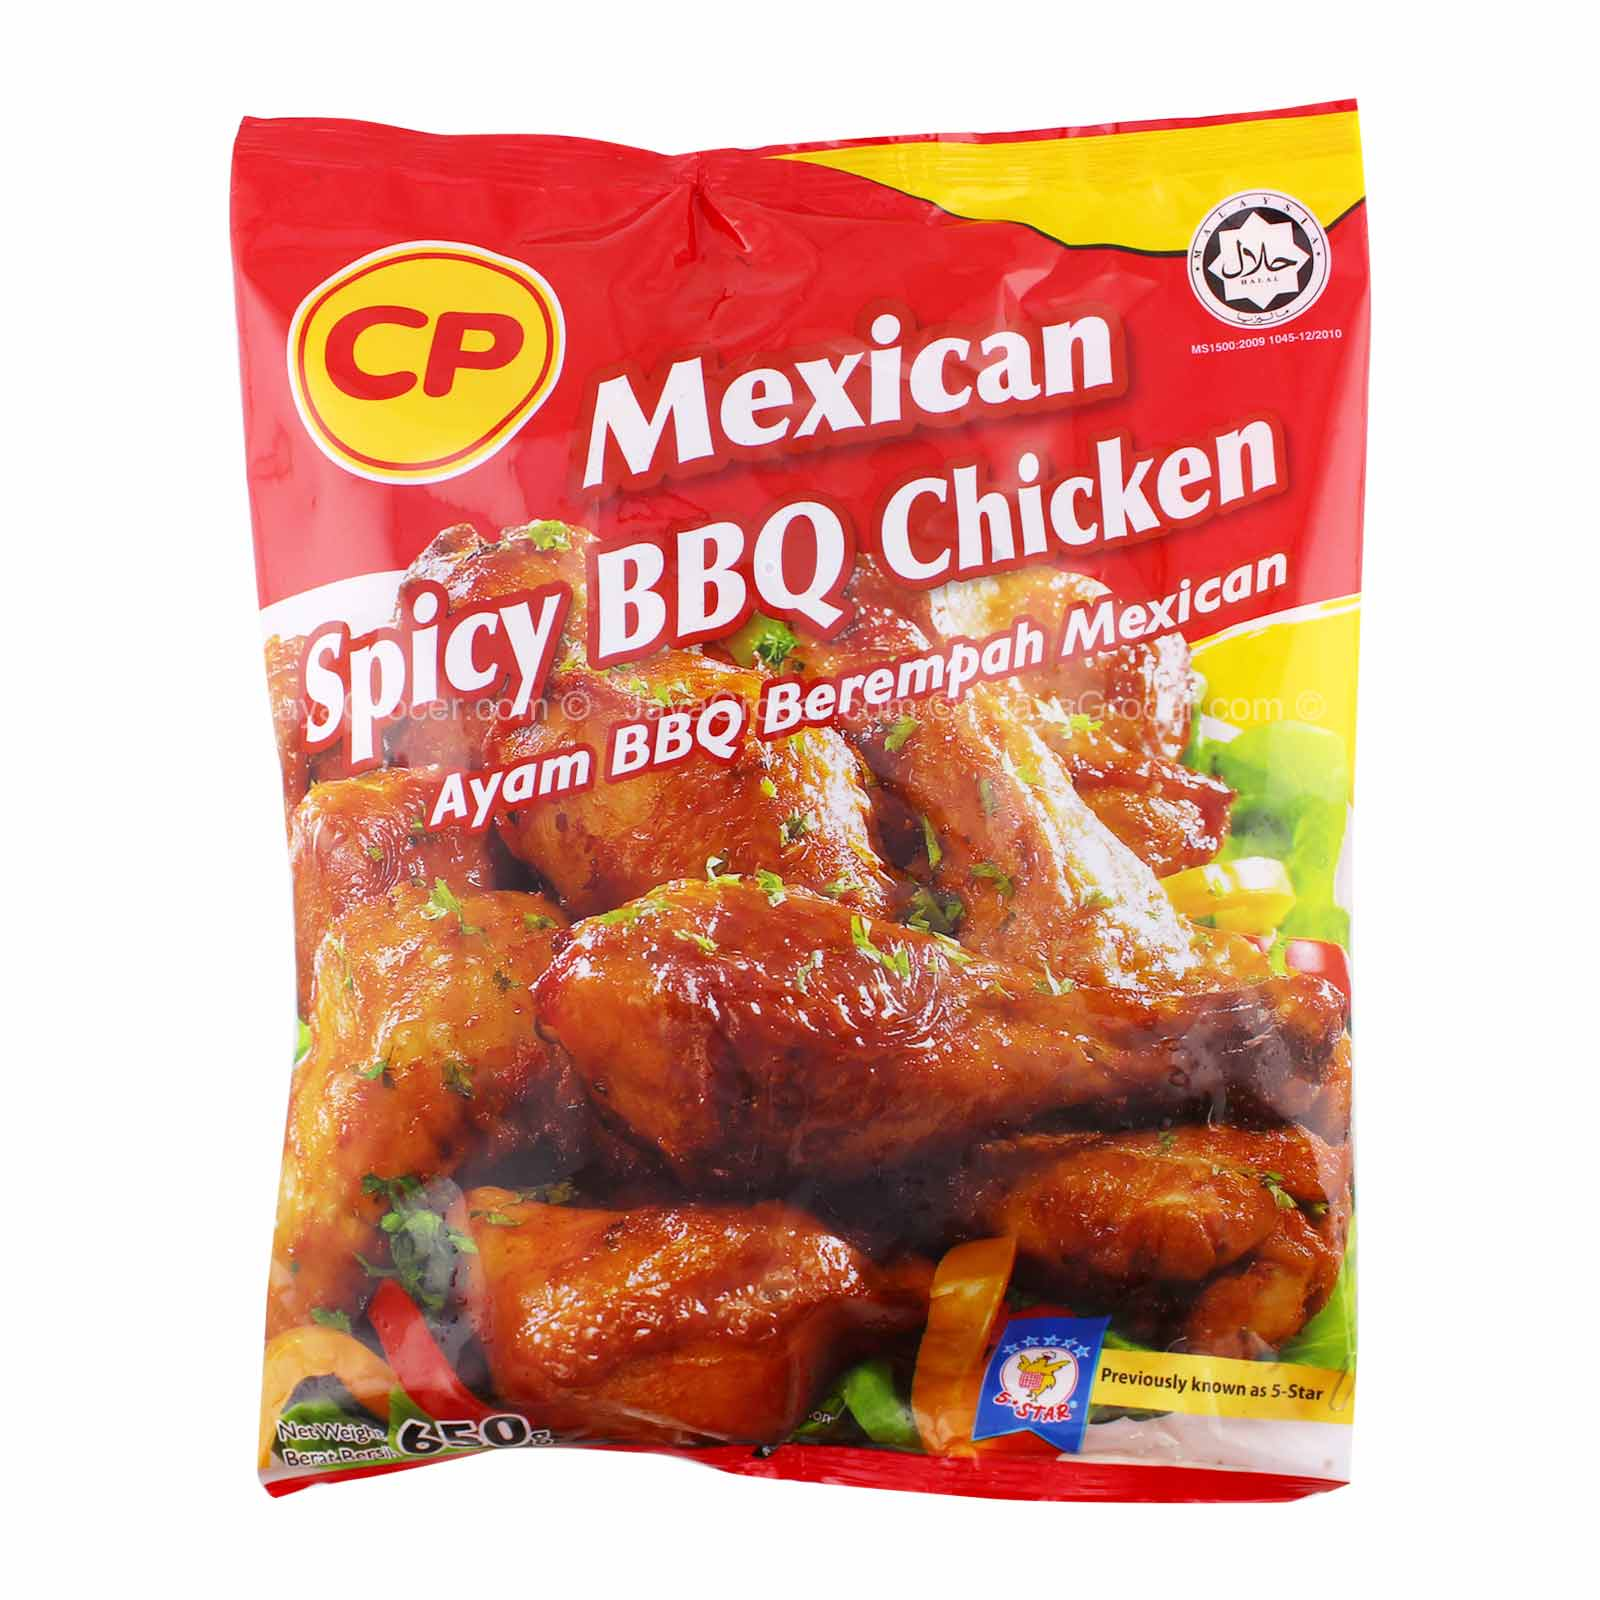 Mexican Spicy BBQ Chicken